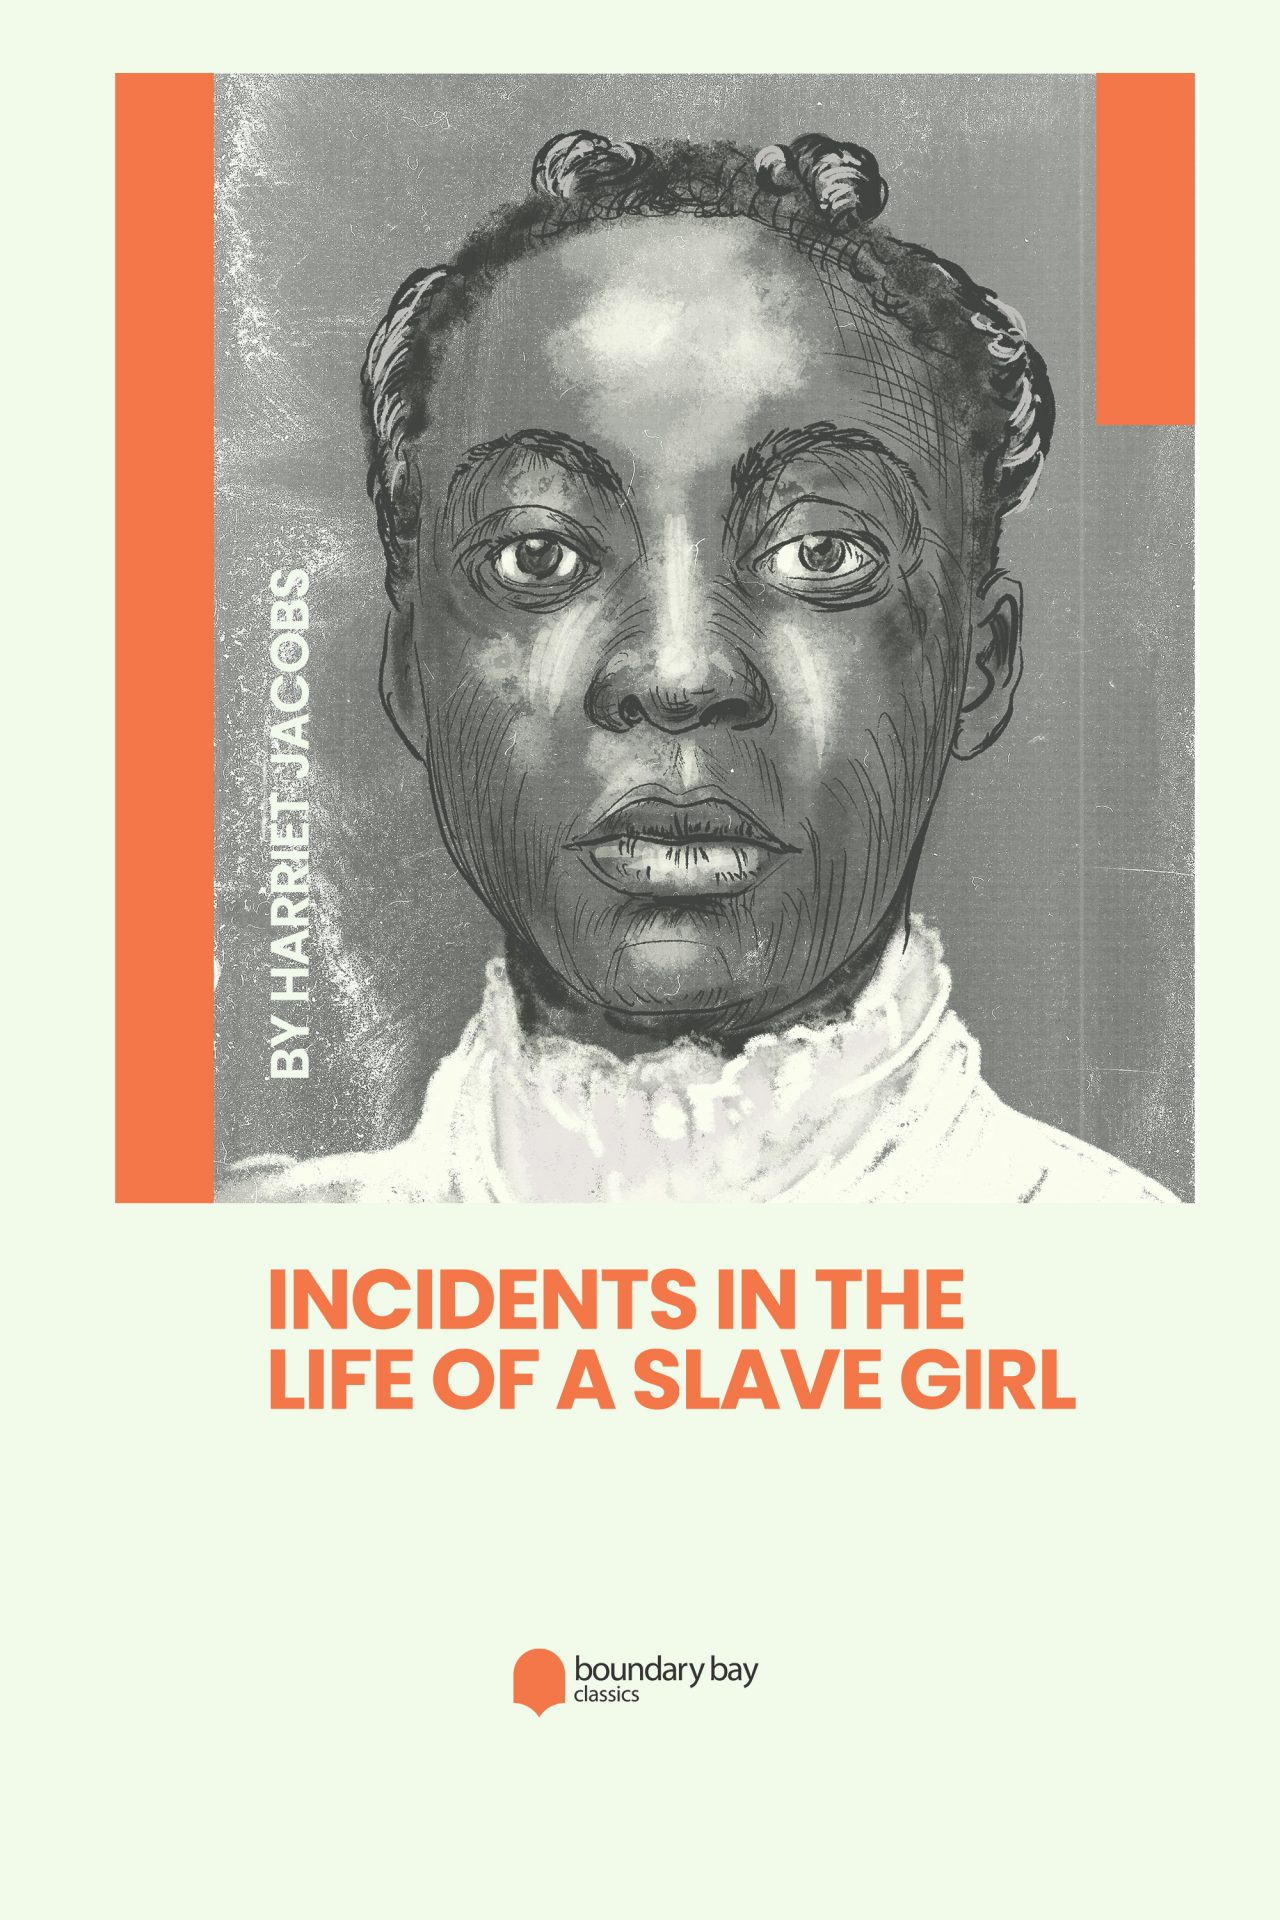 life-of-a-slave-girl